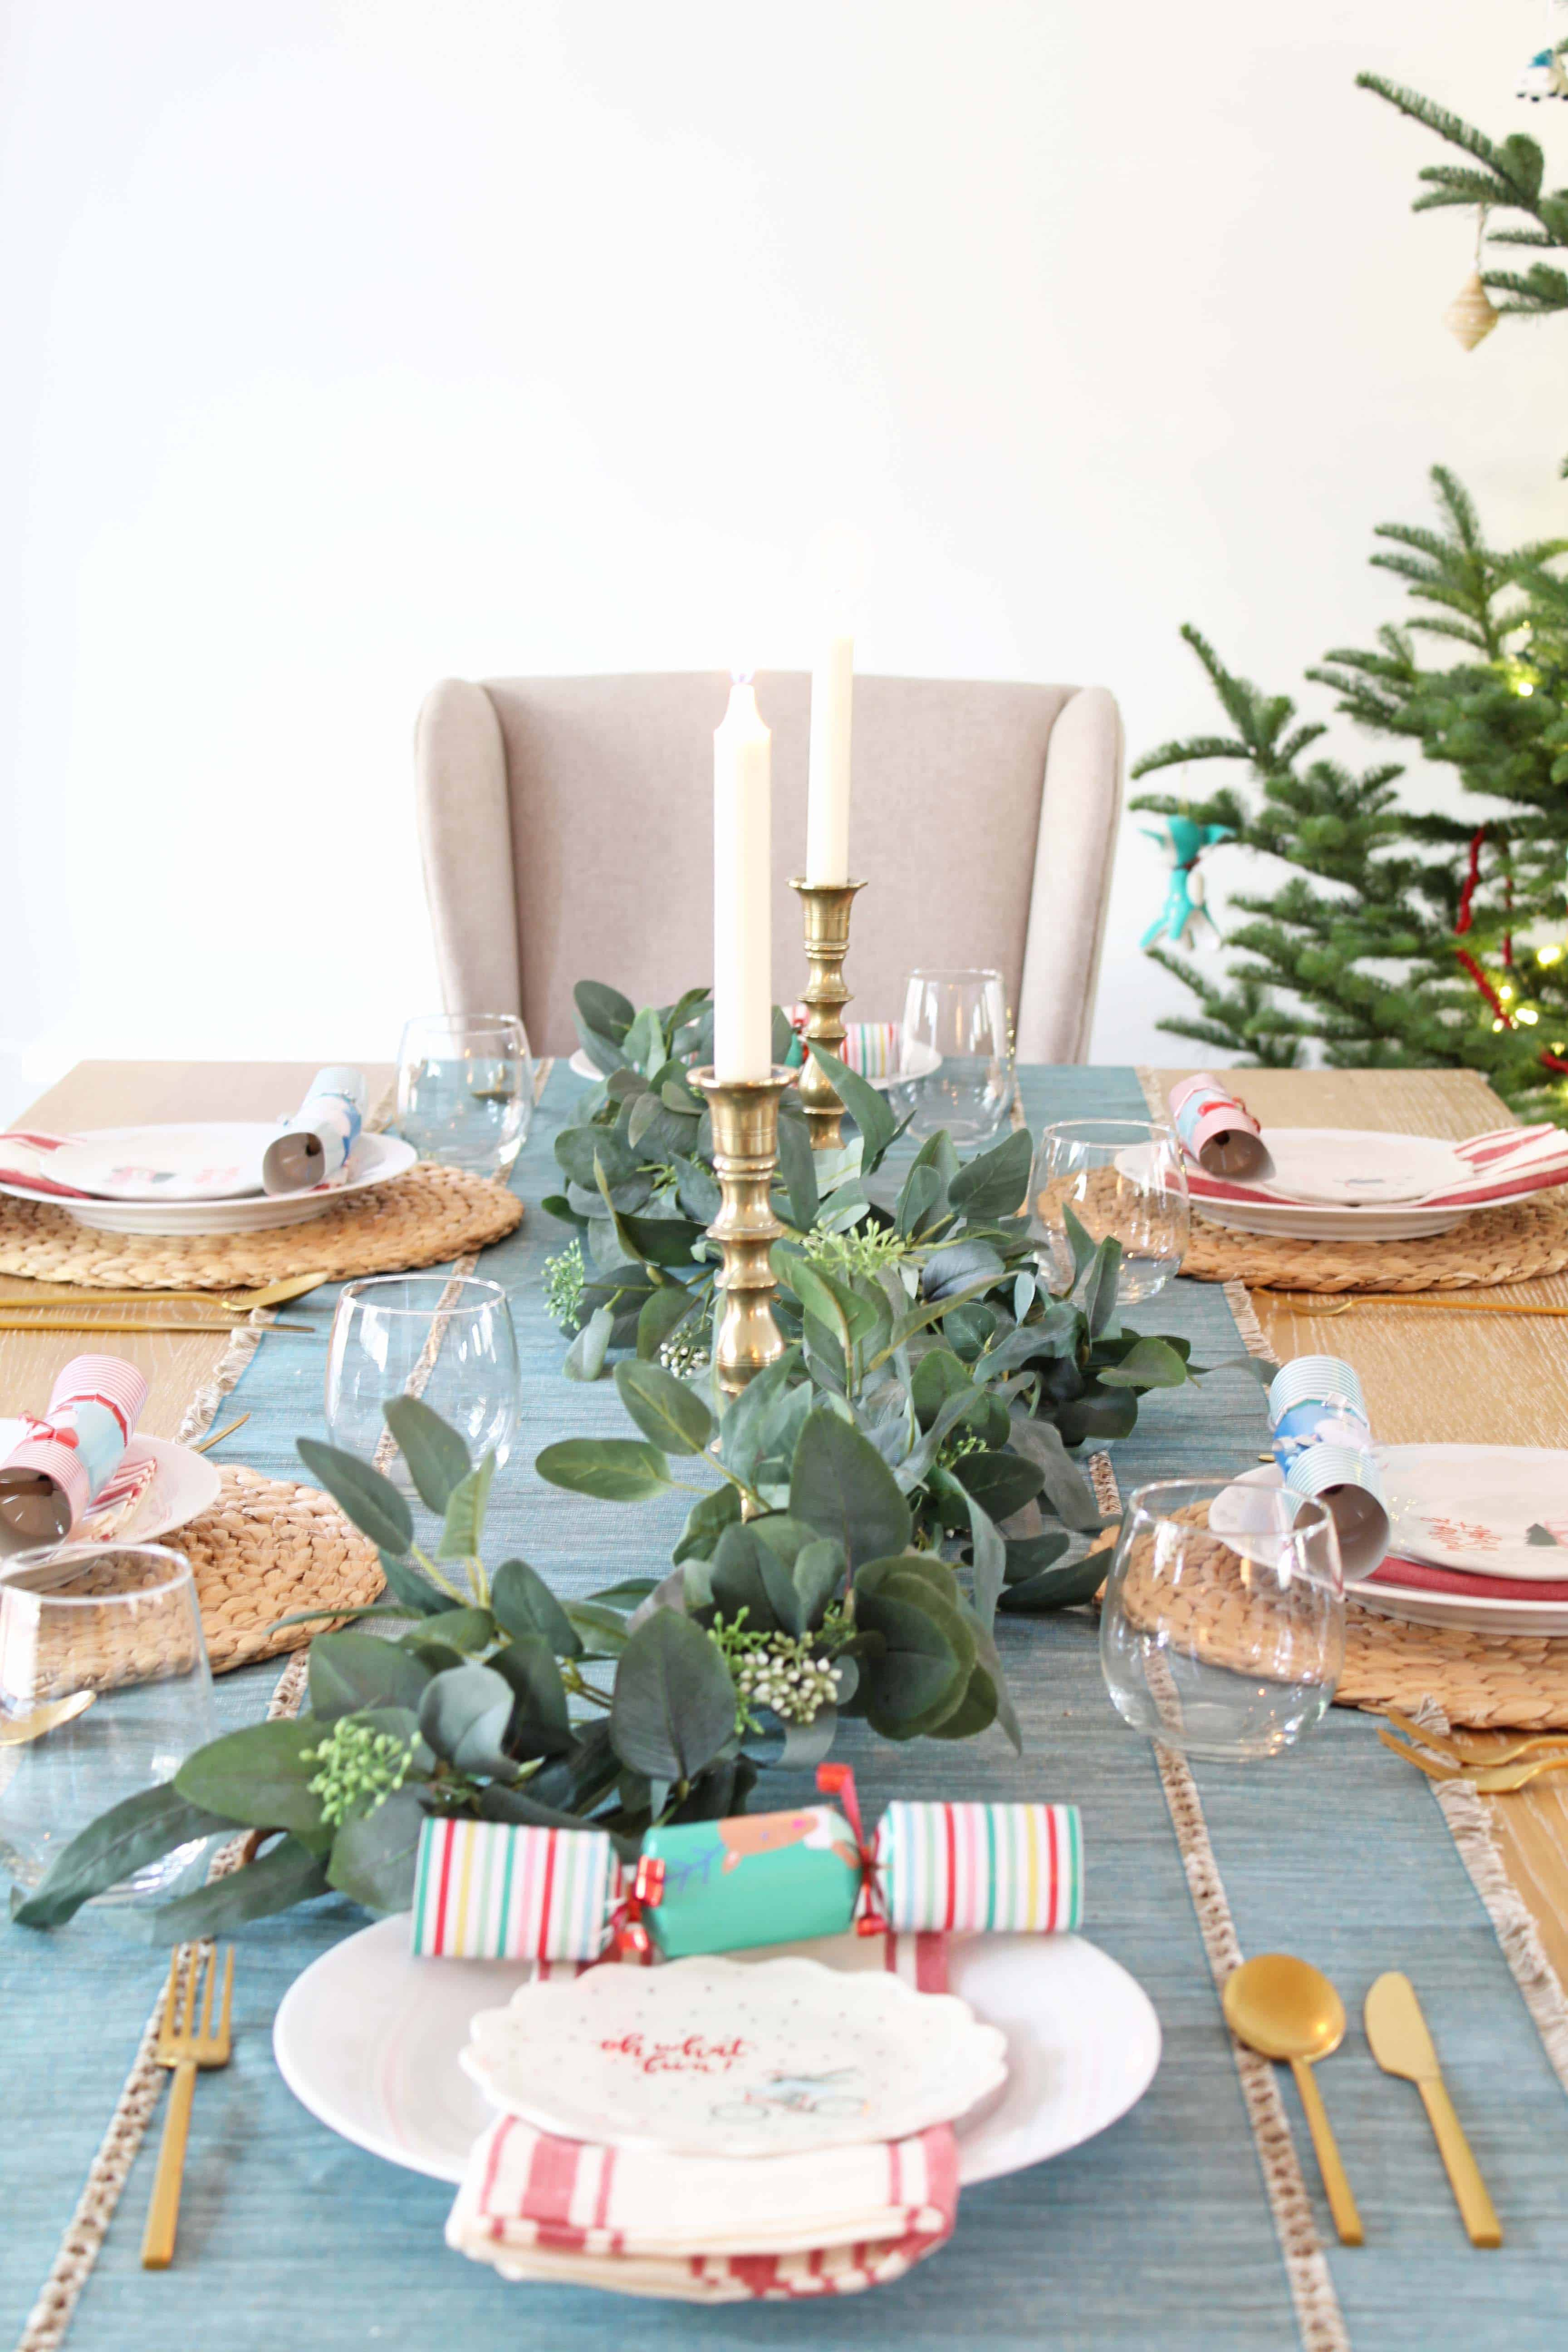 pier one dining table with eucalyptus garland